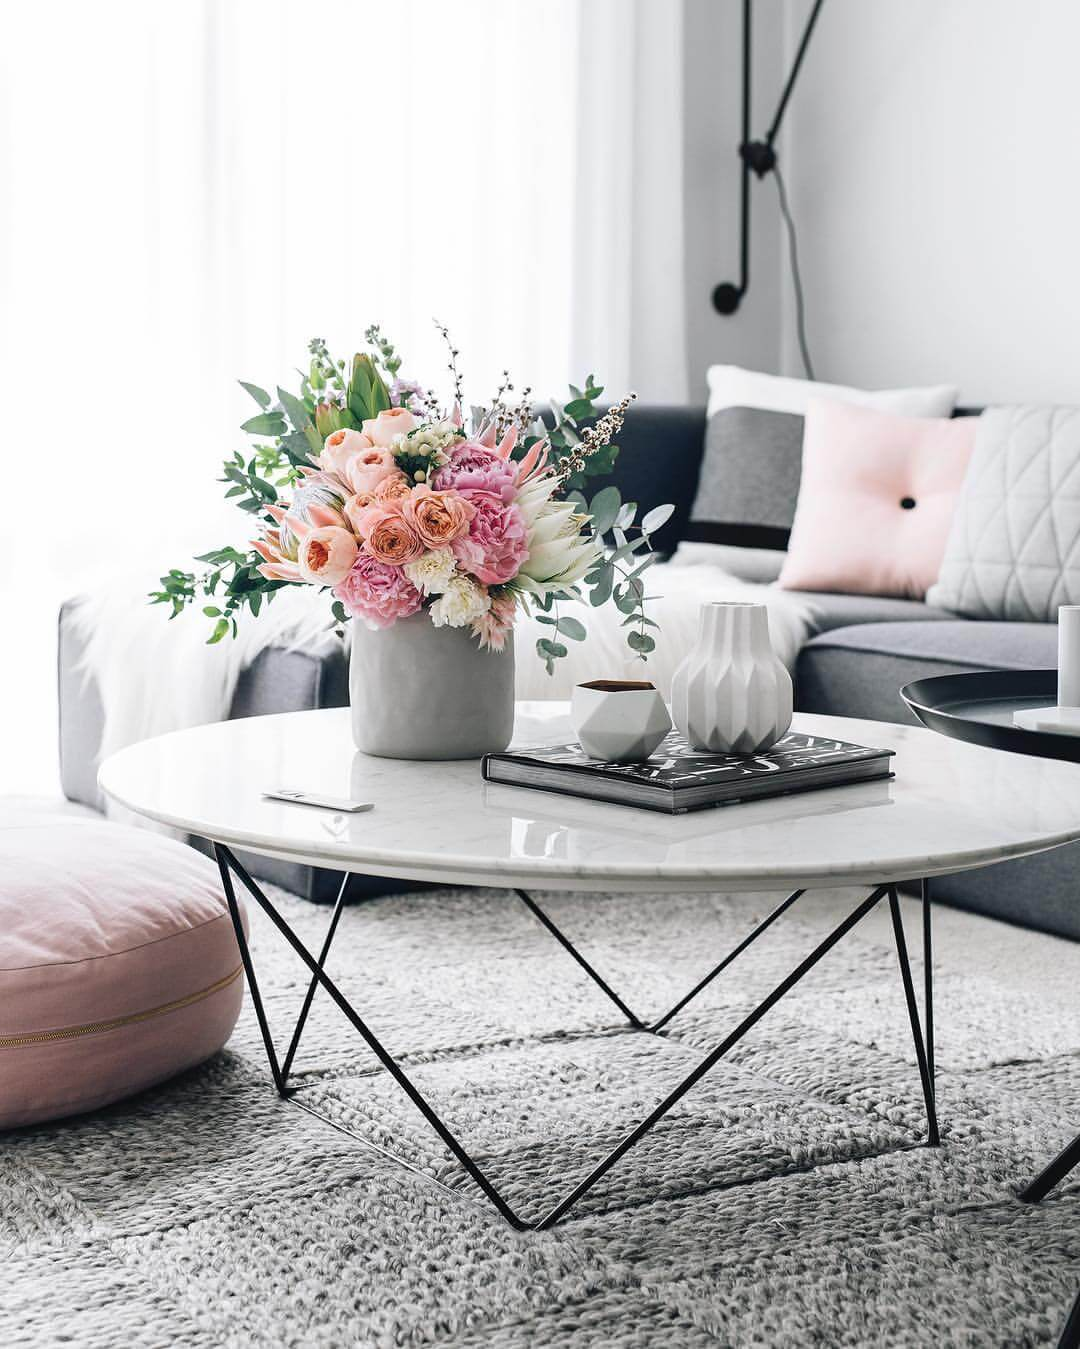 best coffee table decorating ideas and designs for homebnc accents peachy spring flower arrangement with geometric vases vintage brass glass green runner black half moon console